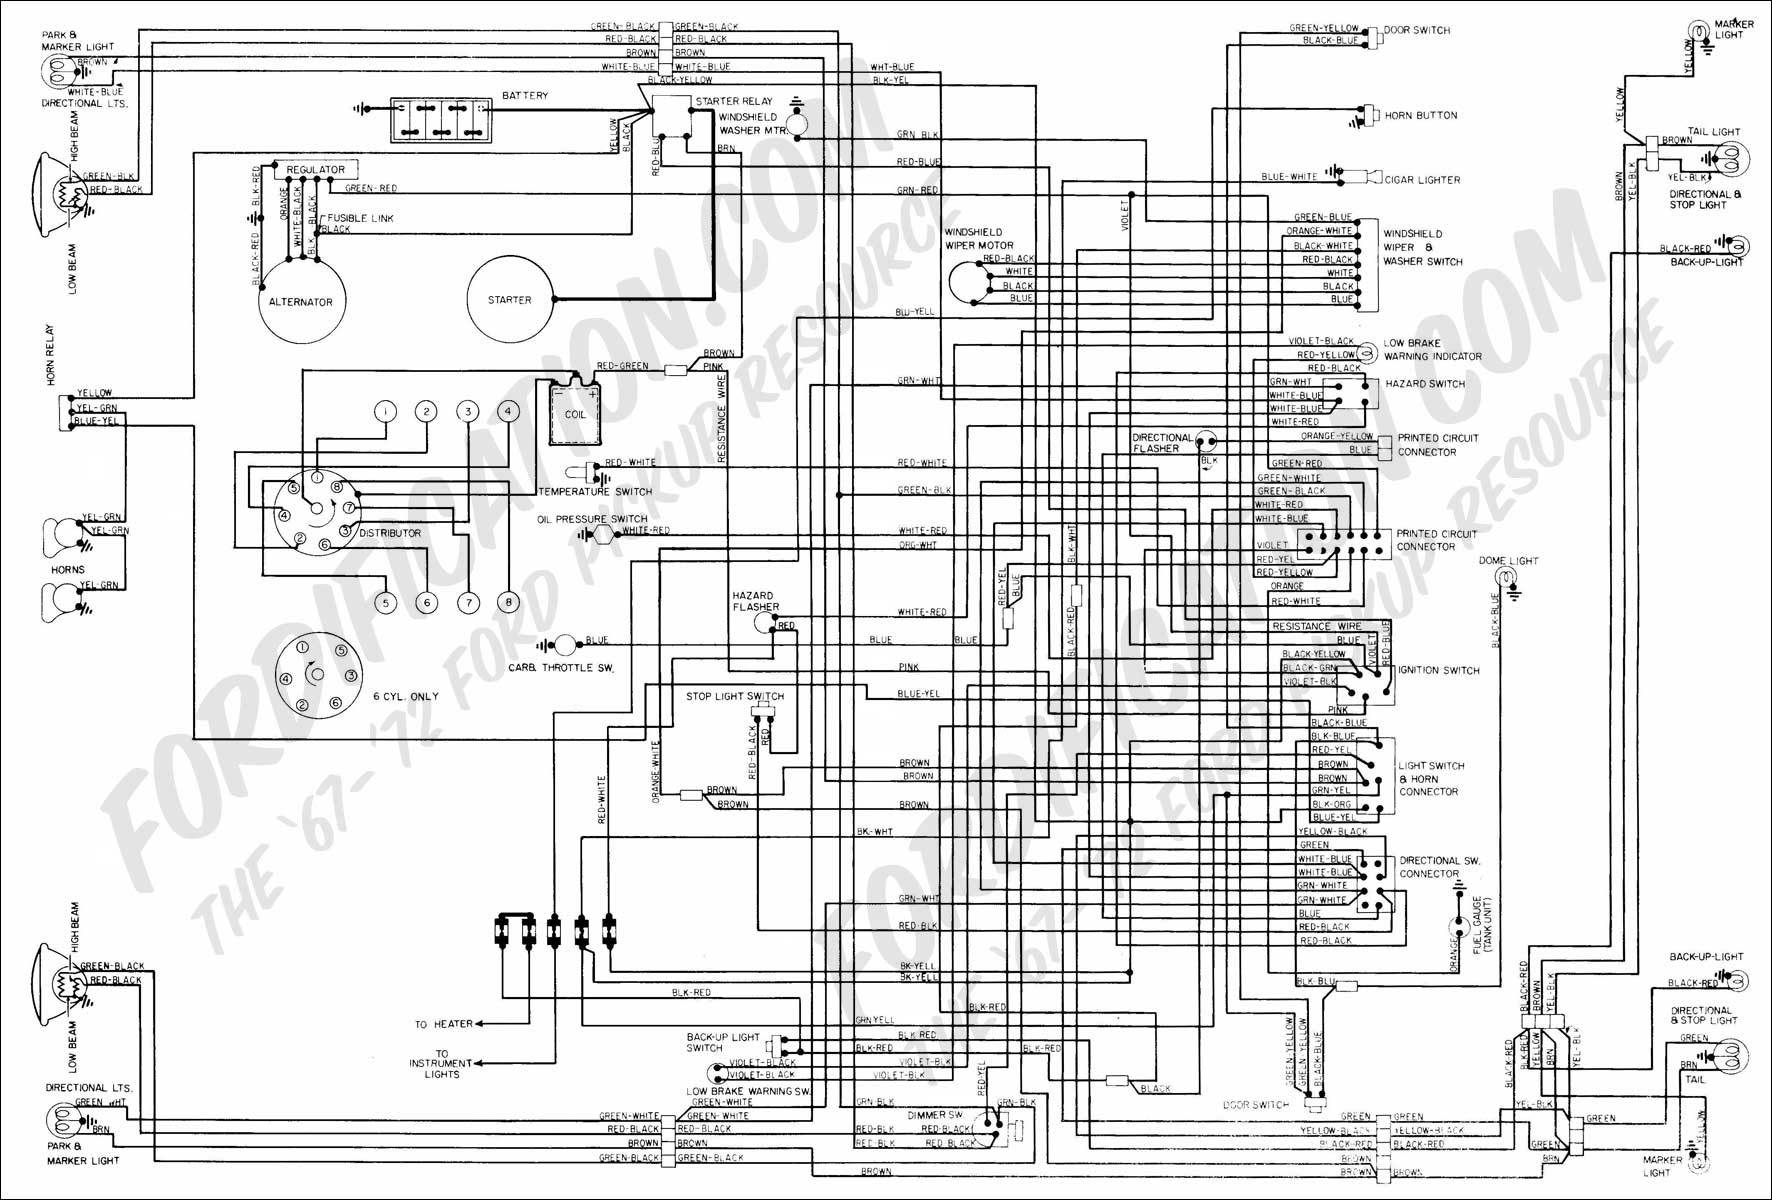 80 wiring_diagram_72_quick_655d12d41781d8f3b63e8f415466ce463b00ec1f diagrams 412300 2002 ford f150 wiring diagram solved need 2002 ford f150 wiring harness diagram at fashall.co